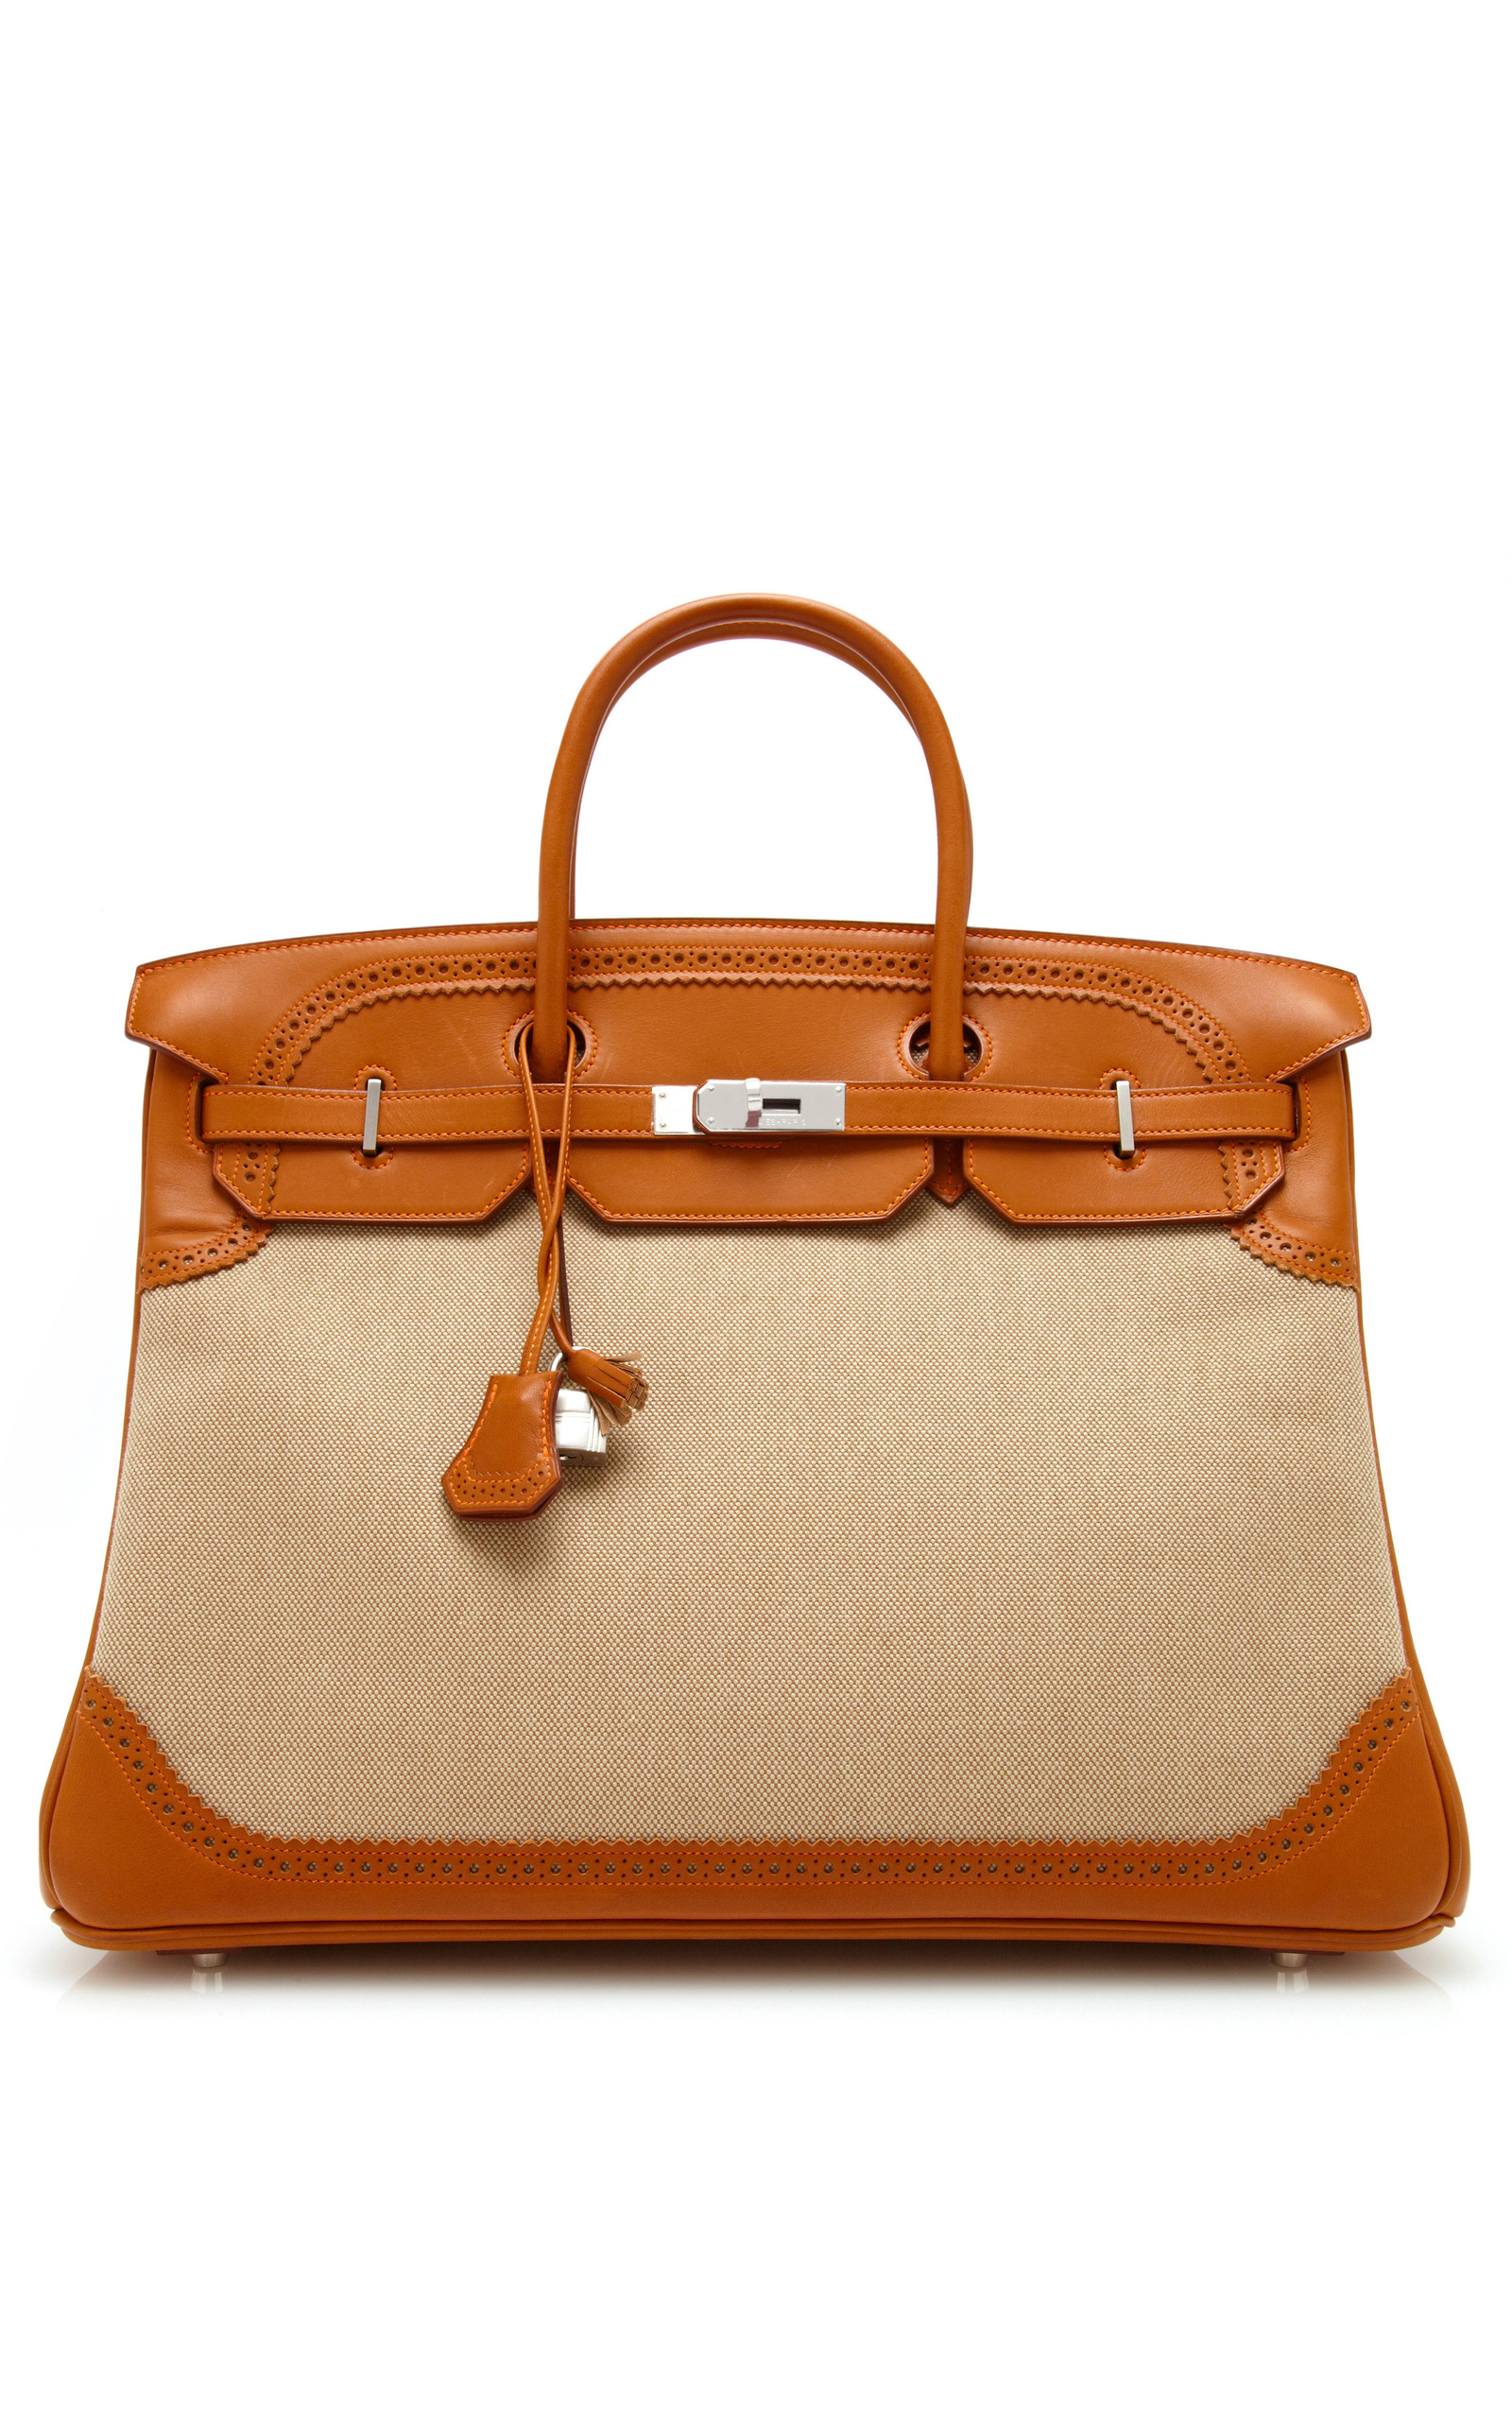 e5c4c3a6e4 Hermes VintageHermes 40Cm Barenia And Toile Ghillies Birkin. CLOSE. Loading